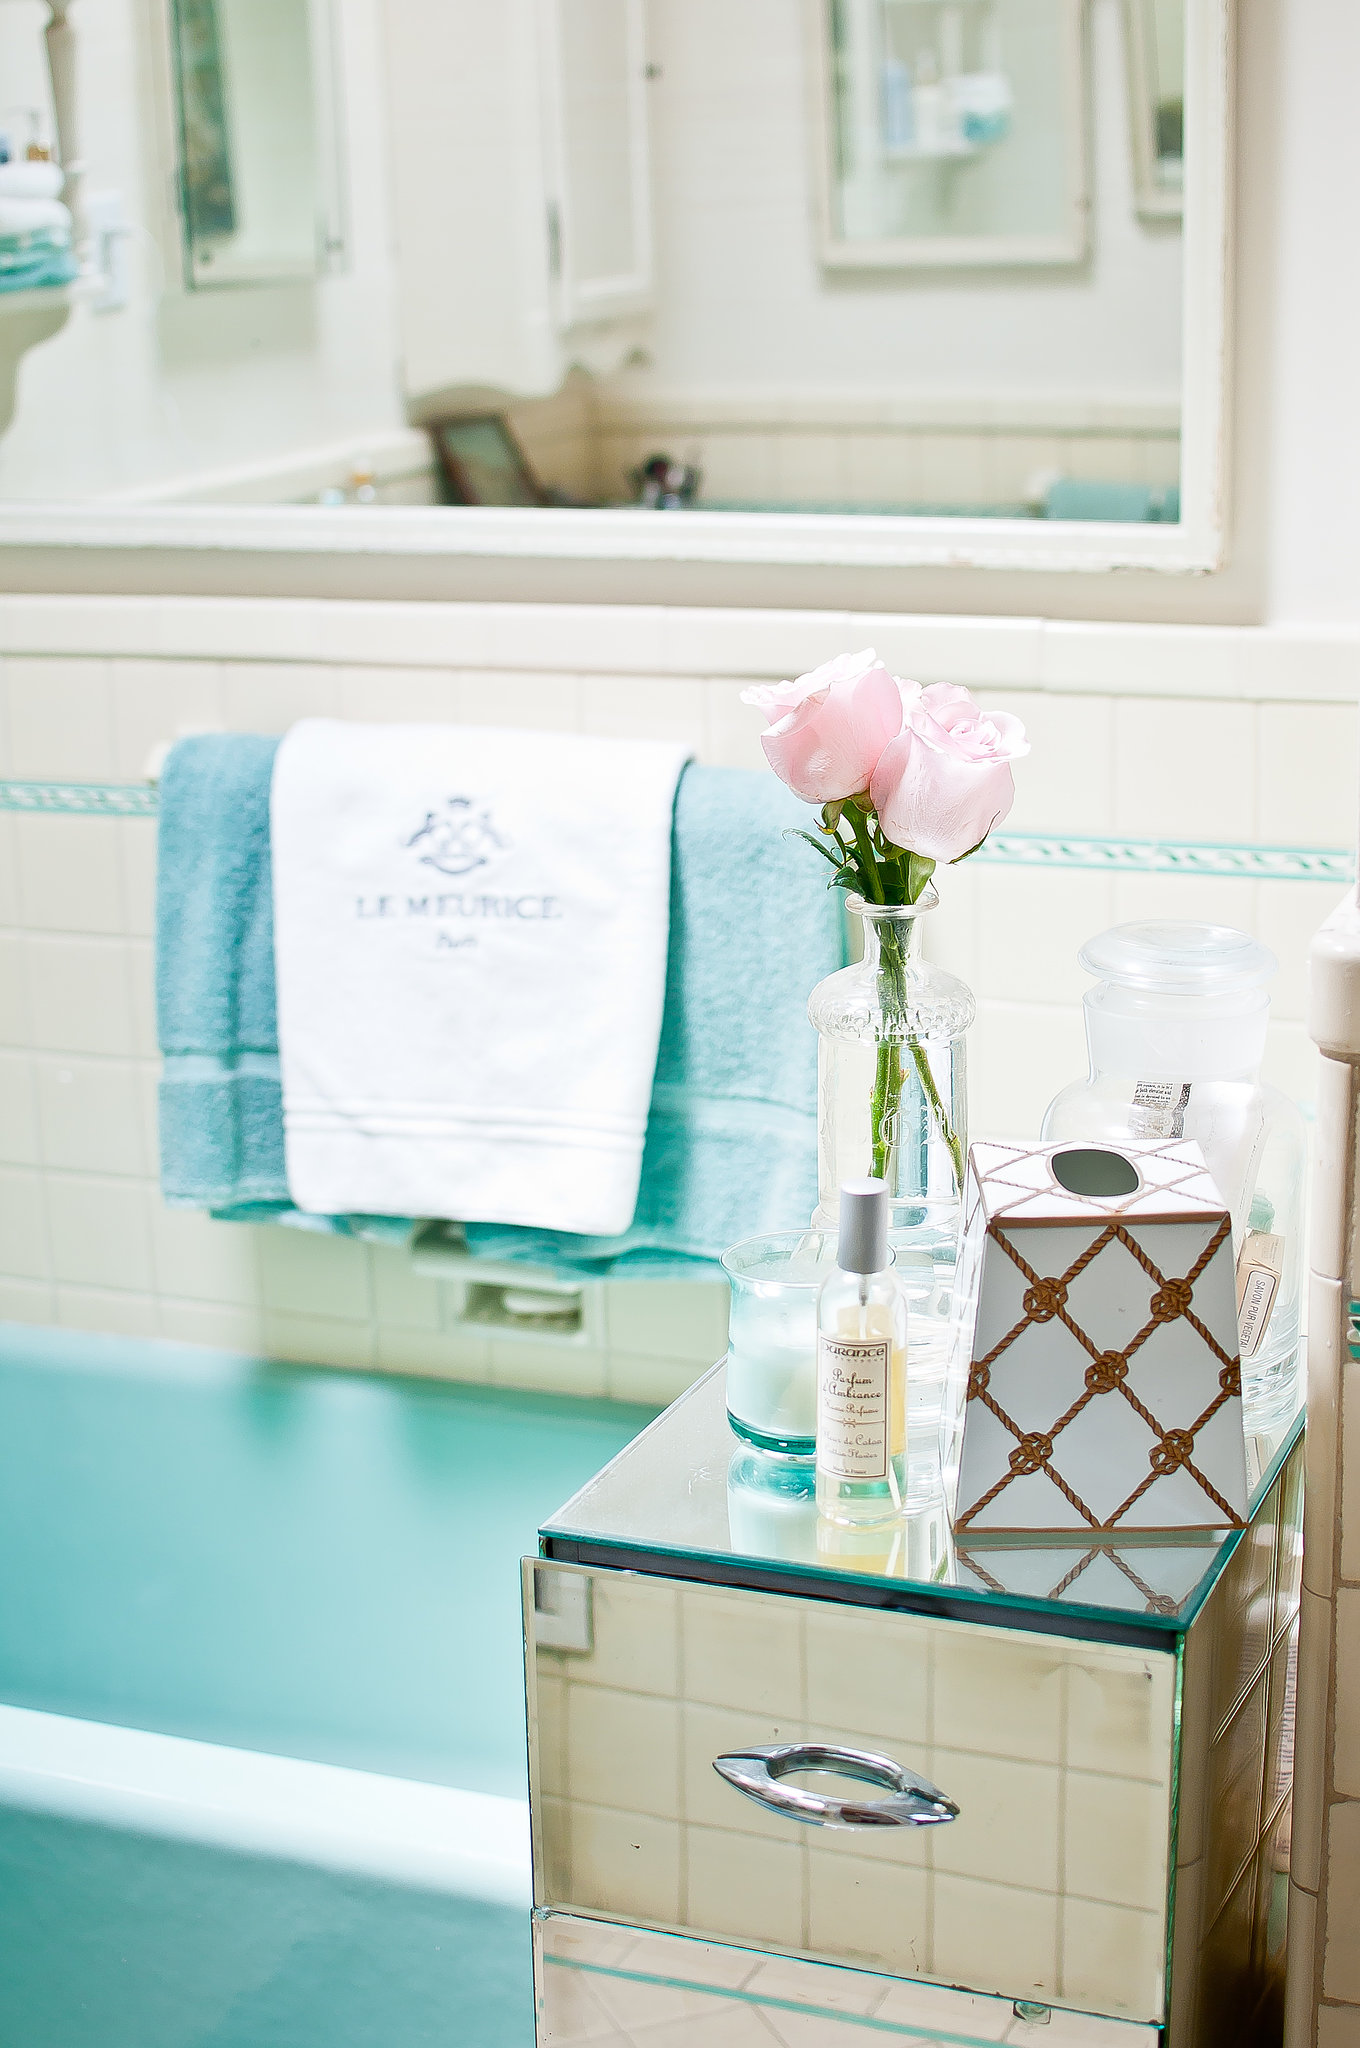 A pale blue retro tub is masterfully integrated with the bedroom's color palette. Source: Kassie Borreson